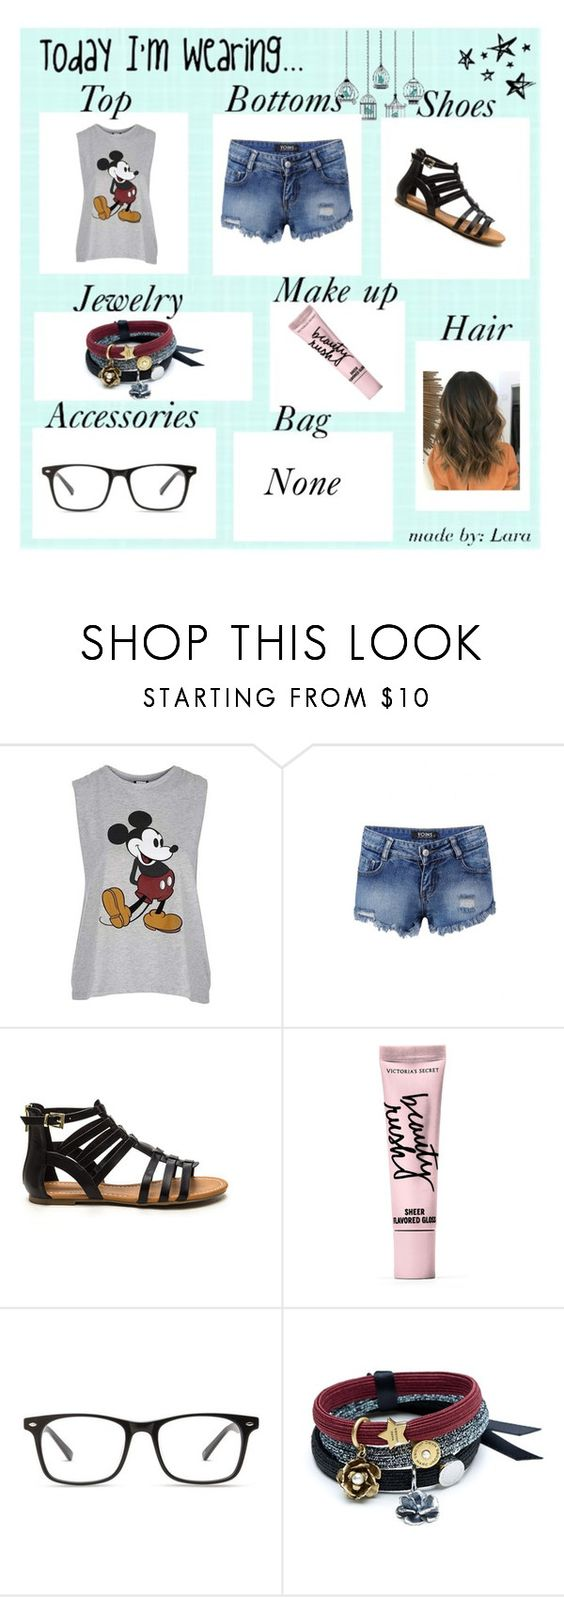 """""""Bored Need Inspir."""" by mizzepic403 ❤ liked on Polyvore featuring Topshop and Beauty Rush"""